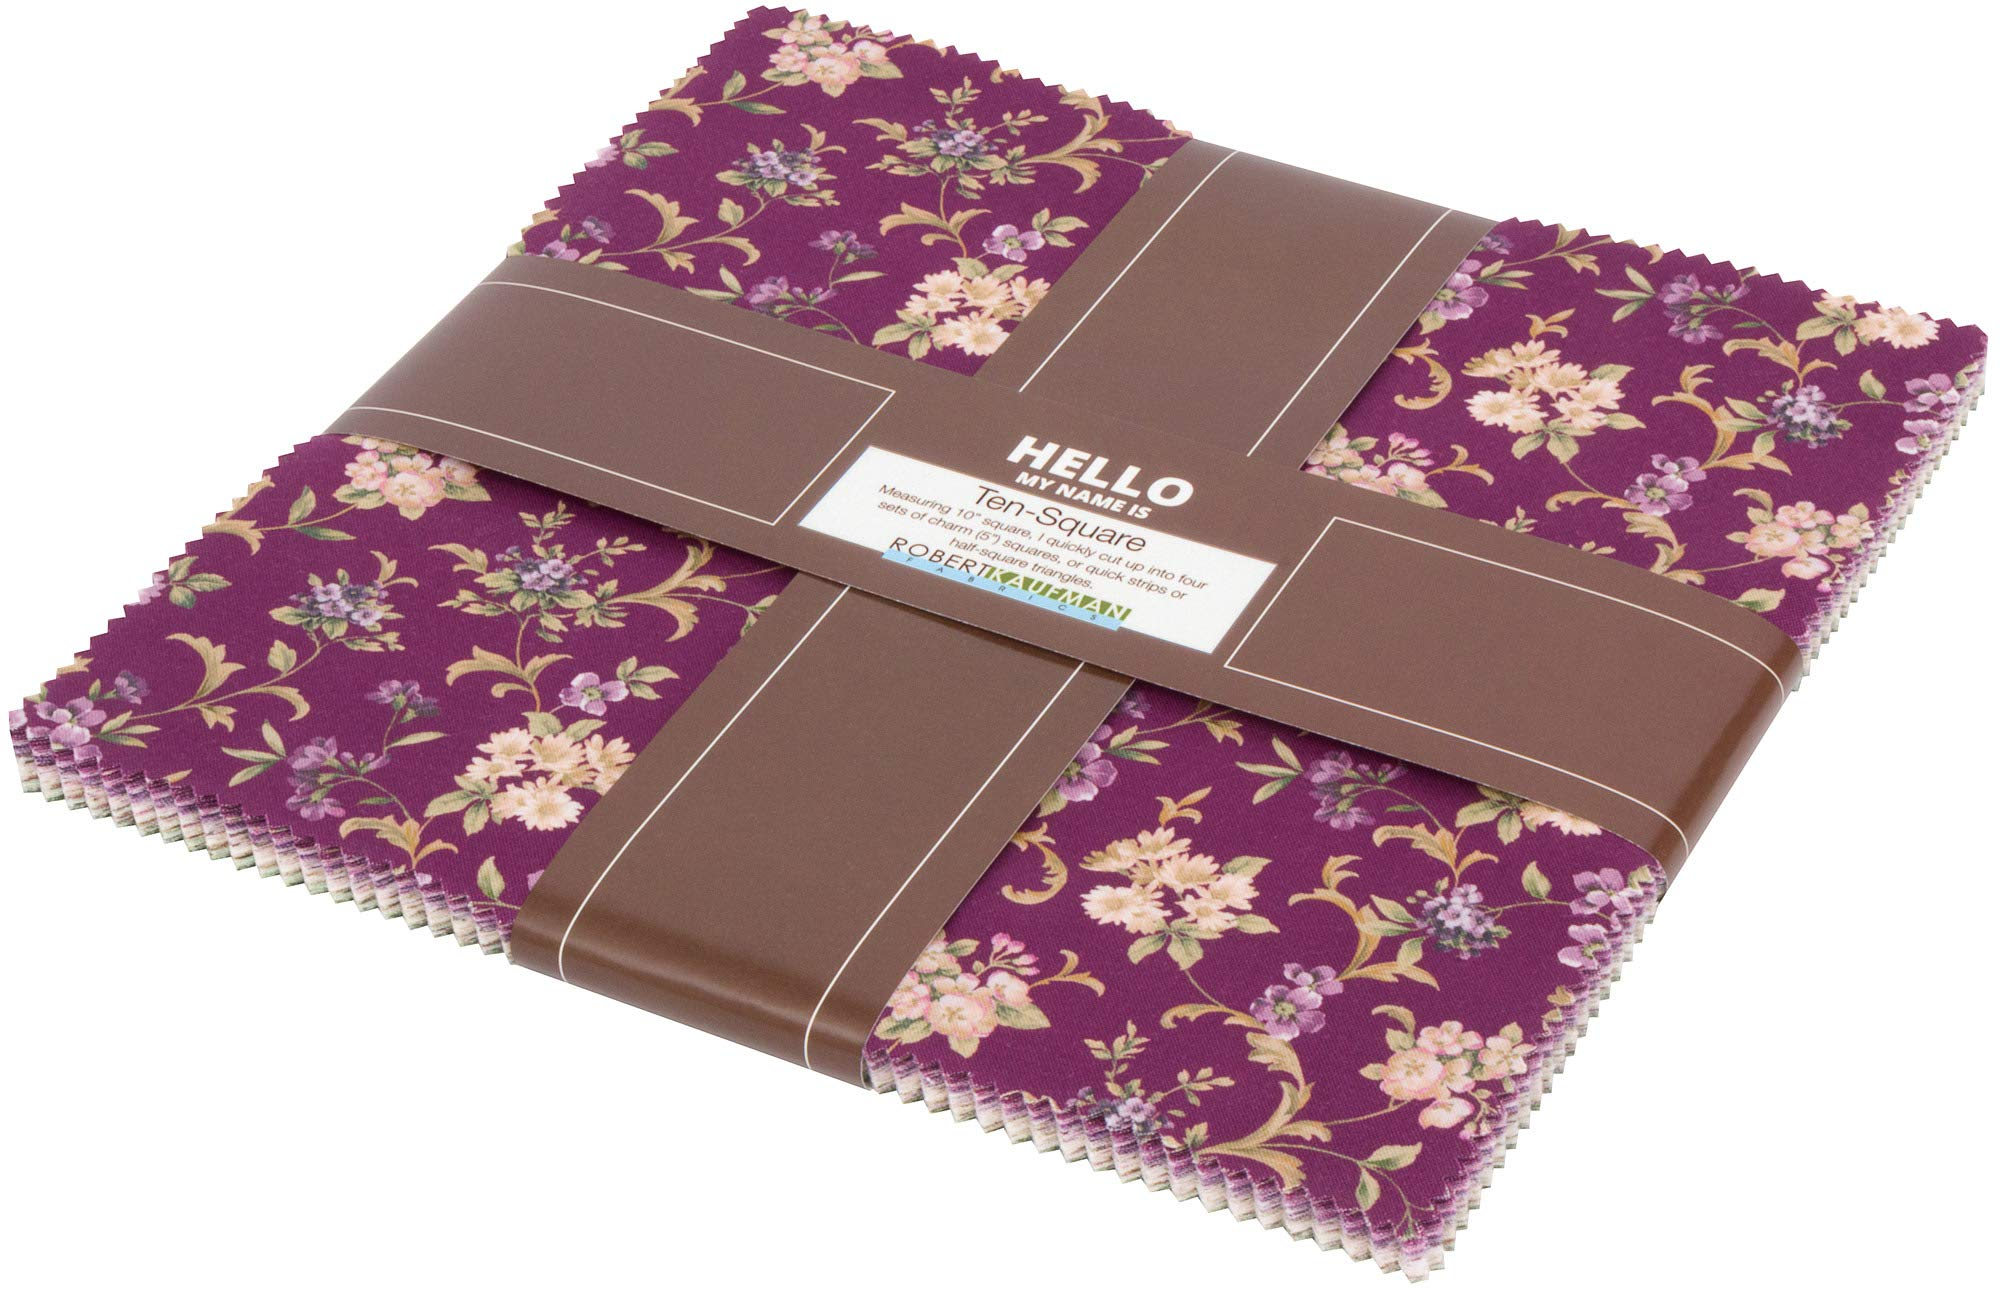 Meredith Ten Square 42 10-inch Squares Layer Cake Robert Kaufman Fabrics TEN-723-42 by Robert Kaufman Fabrics